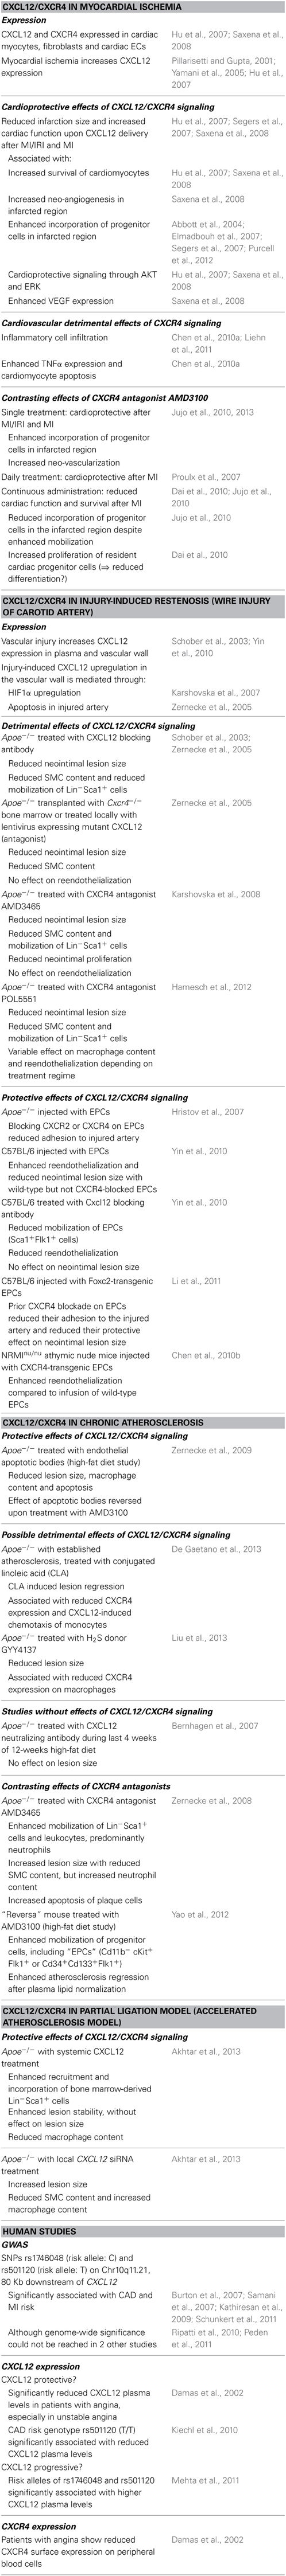 Frontiers | The CXCL12/CXCR4 chemokine ligand/receptor axis